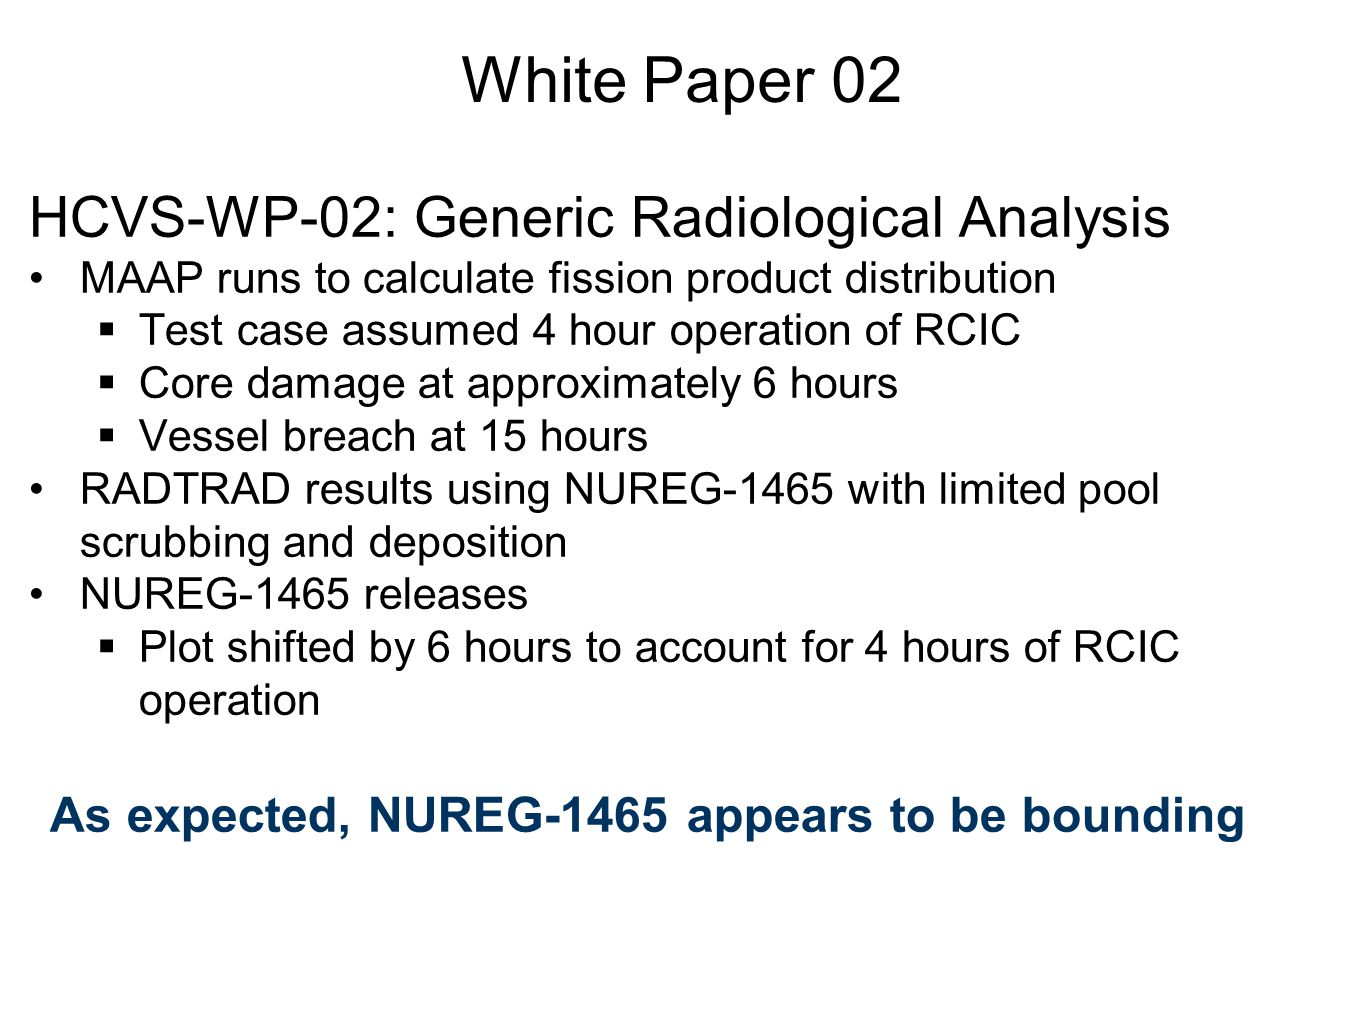 As expected, NUREG-1465 appears to be bounding